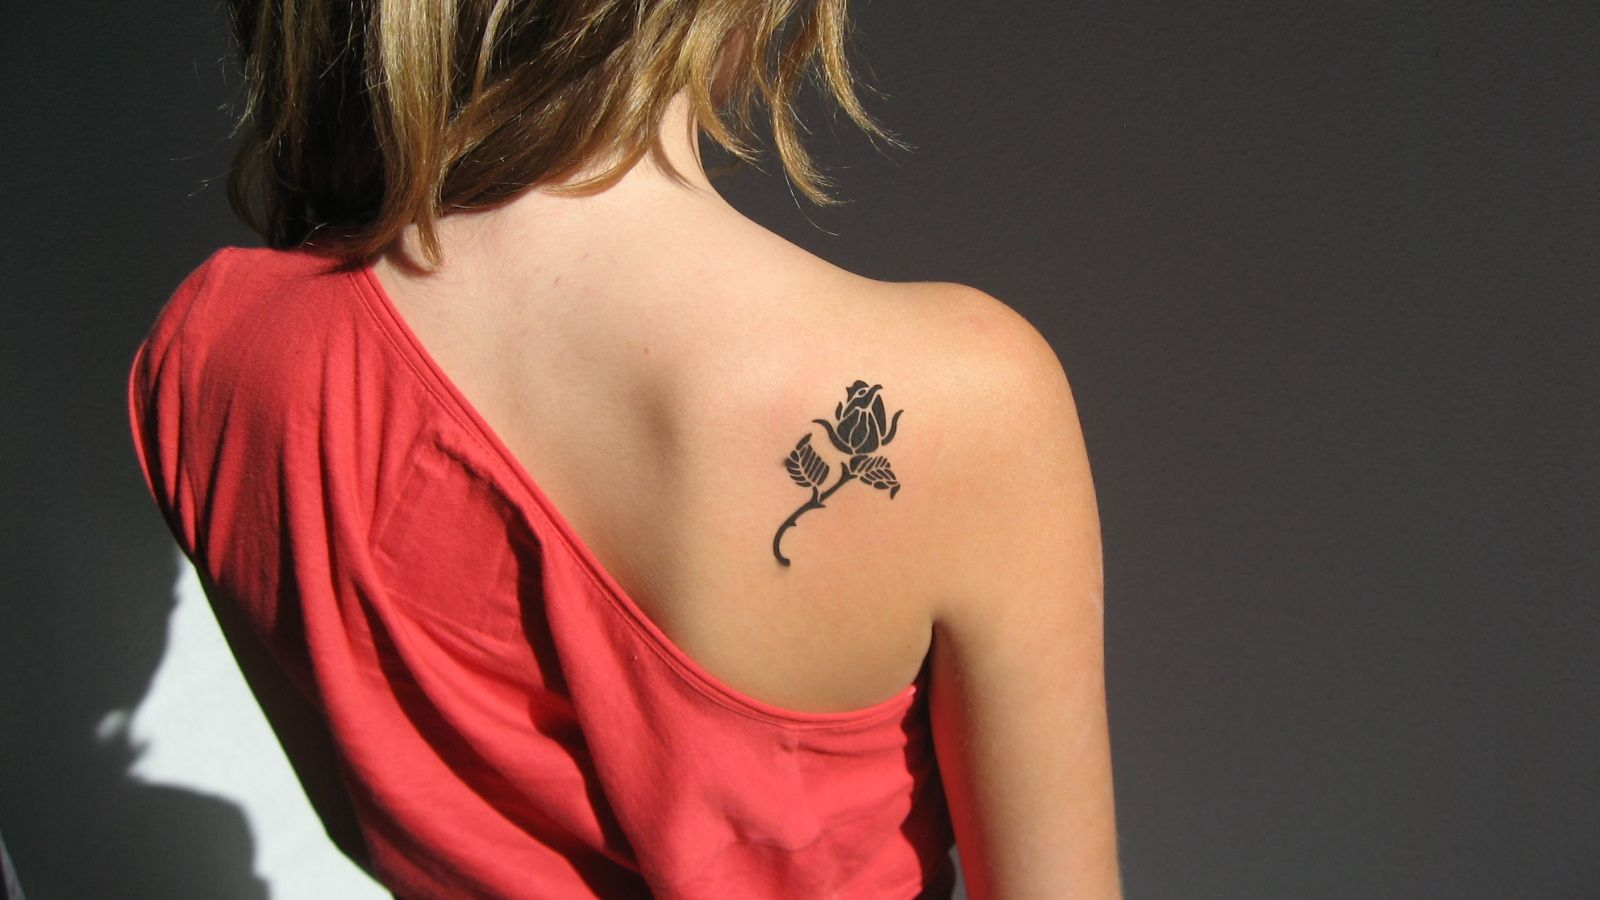 e10dcdedb Back Shoulder Black Small Flower Tattoos Designs | Tattoos | Black ...